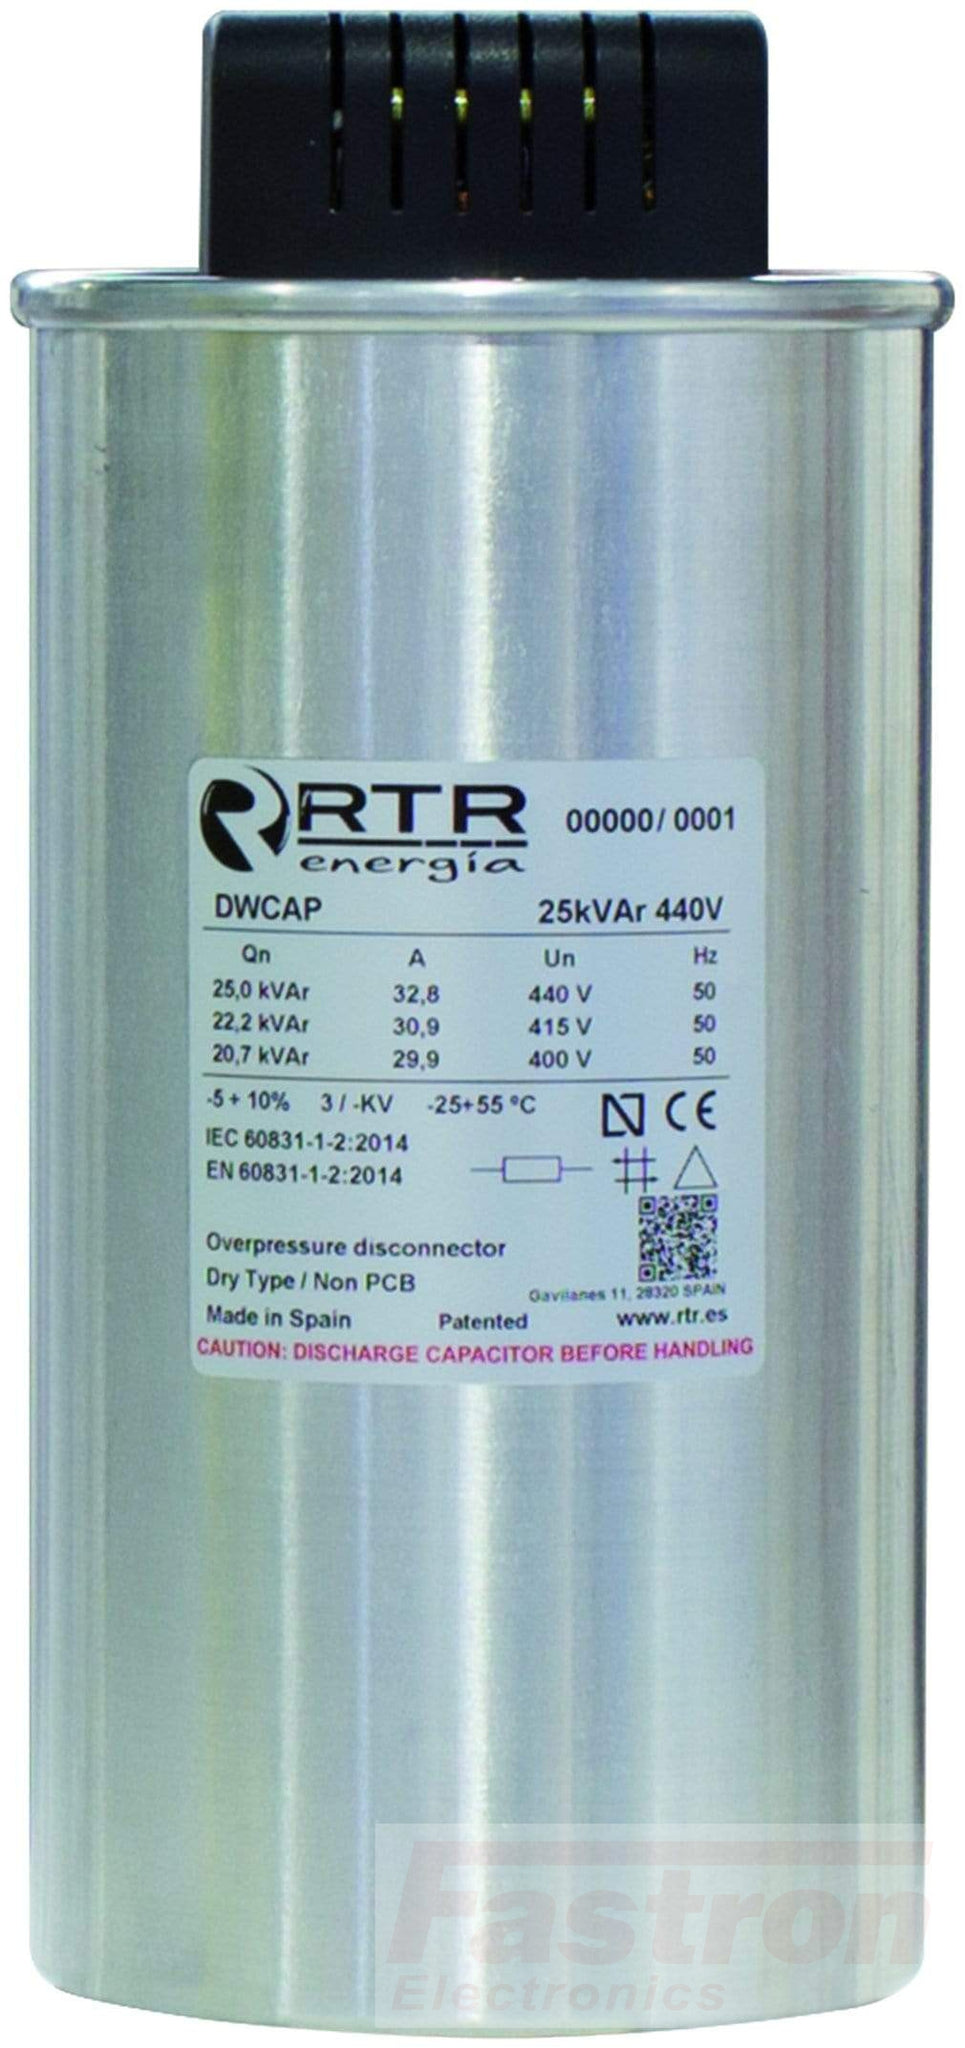 D5251505TER0000 Power Factor Correction Capacitor, 3 Phase, Dry Type DWCAP 15.0 KVAR, 525V, 50HZ